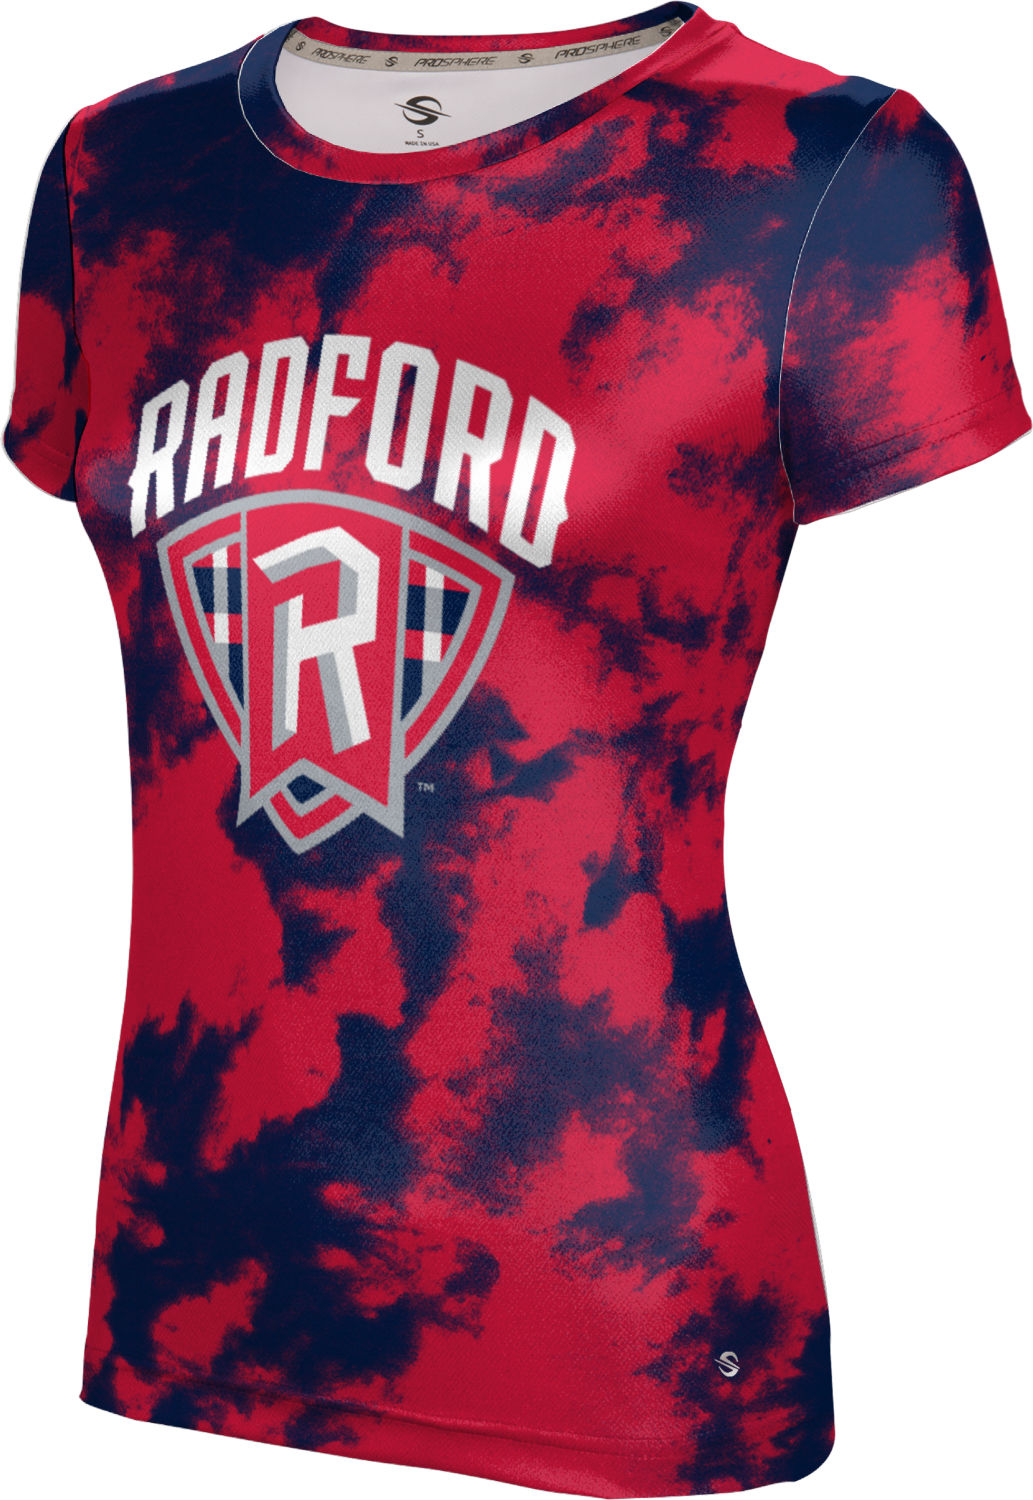 ProSphere Girls' Radford University Grunge Tech Tee